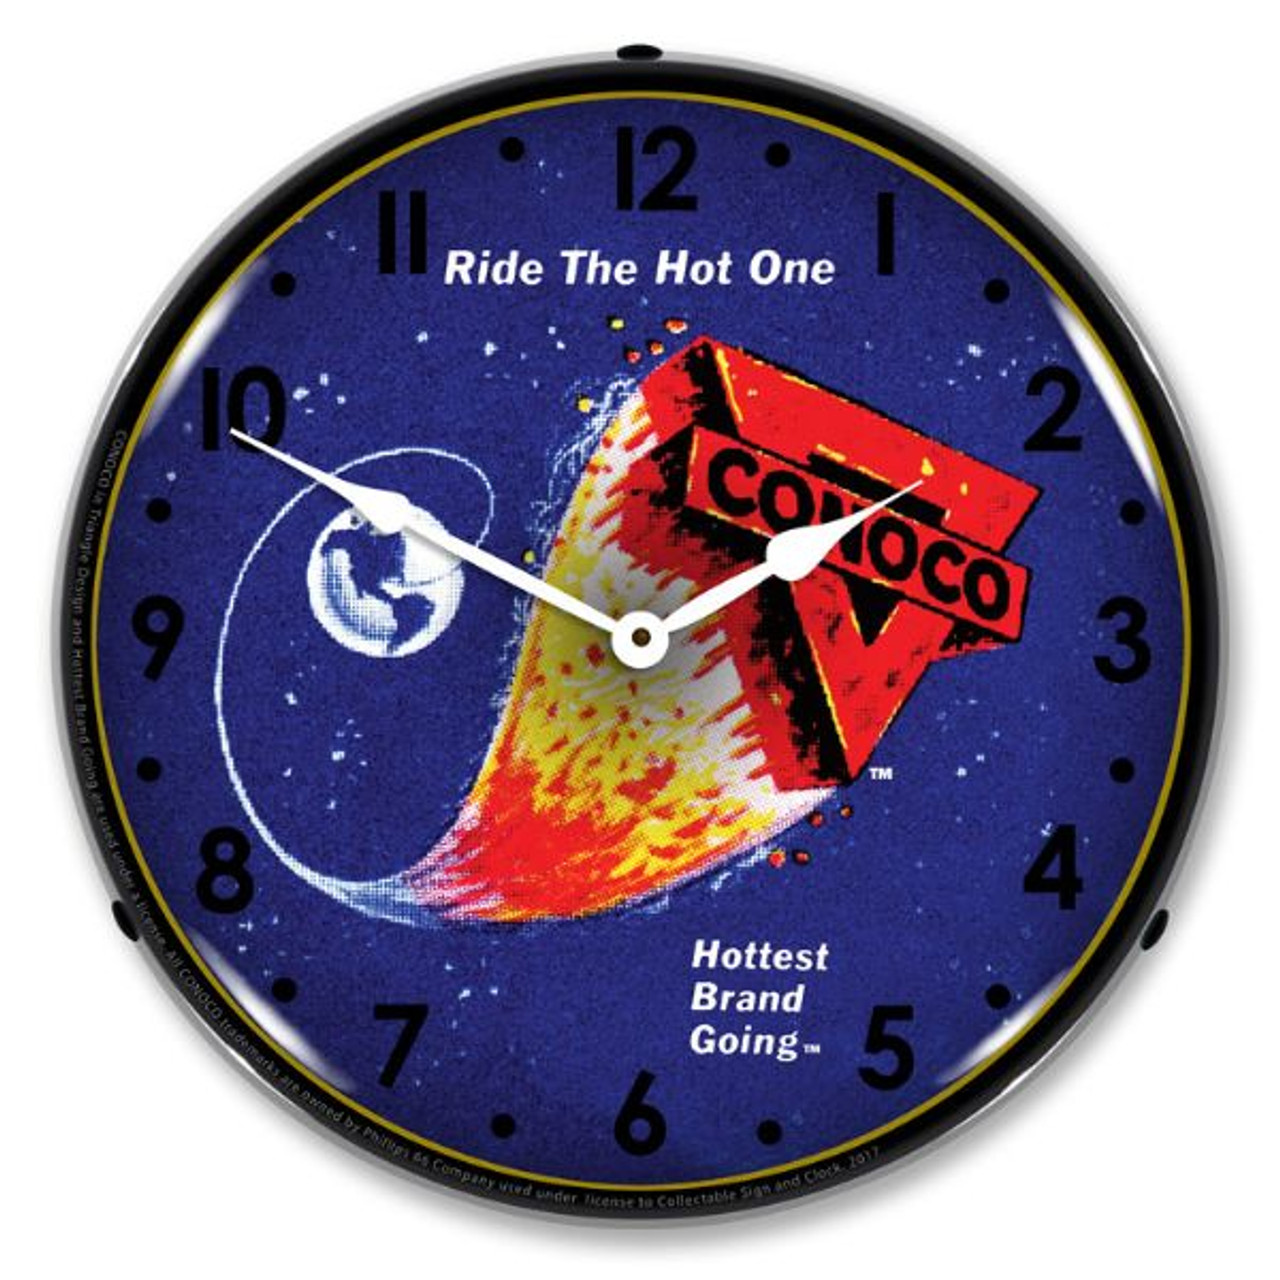 Conoco The Hottest Brand Going LED Lighted Wall Clock 14 x 14 Inches